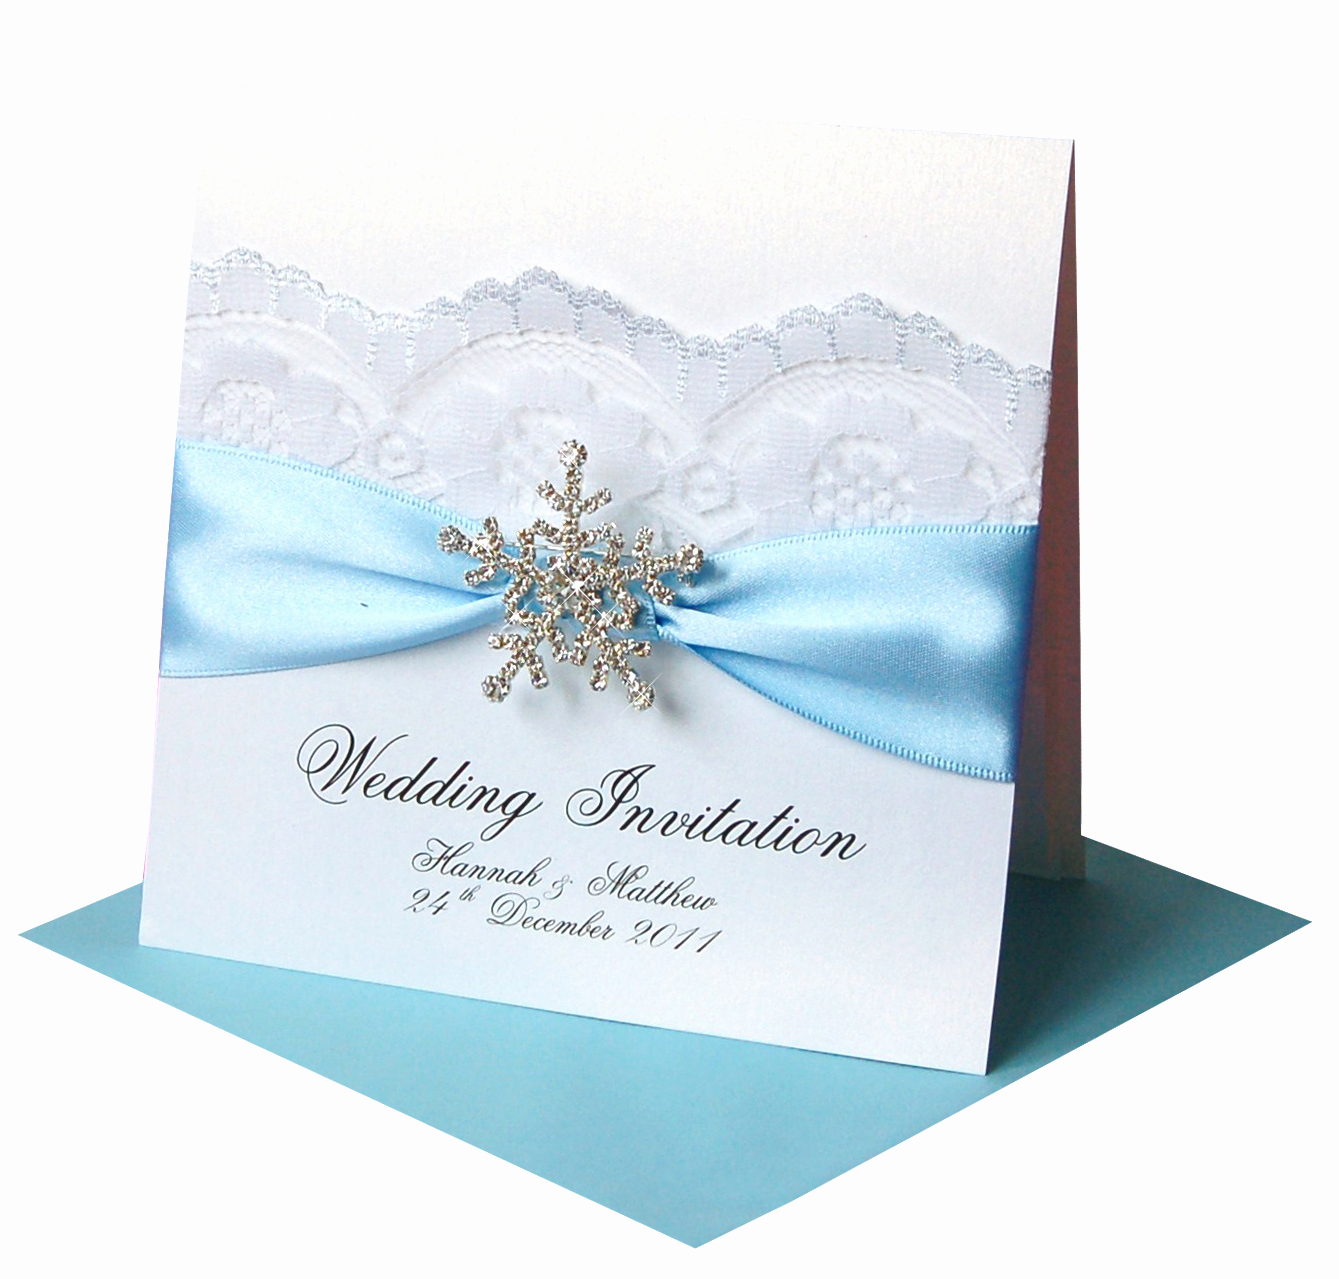 Wedding Invitations with Pictures Unique Winter Wedding Invitations – 'snowflake' Crystal